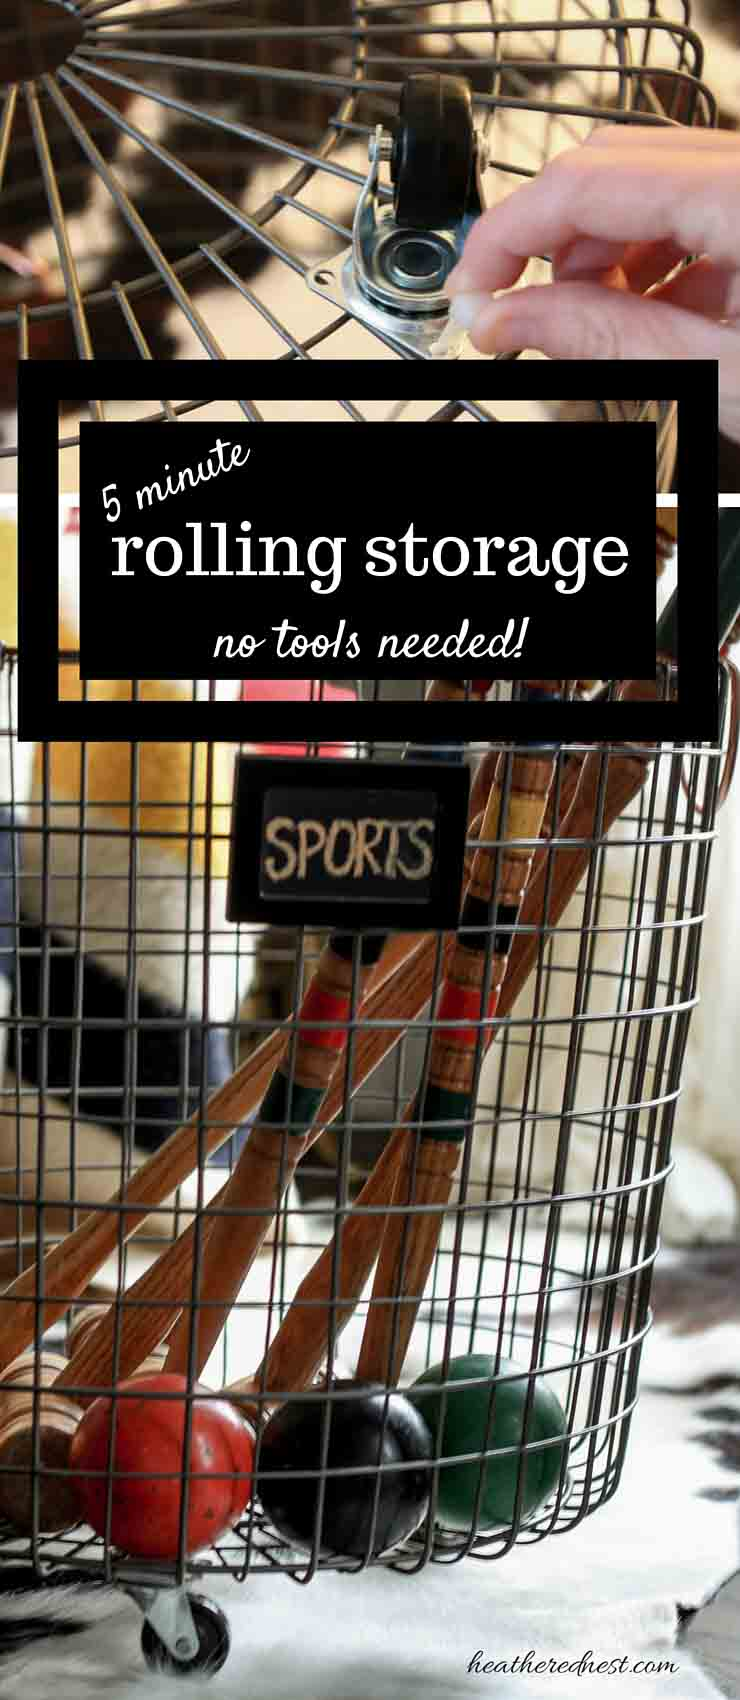 DIY storage solution in 5 minutes, no tools! You've GOT to try this SUPER EASY, fast DIY! GREAT for toys/sports equipment!! from www.heatherednest.com